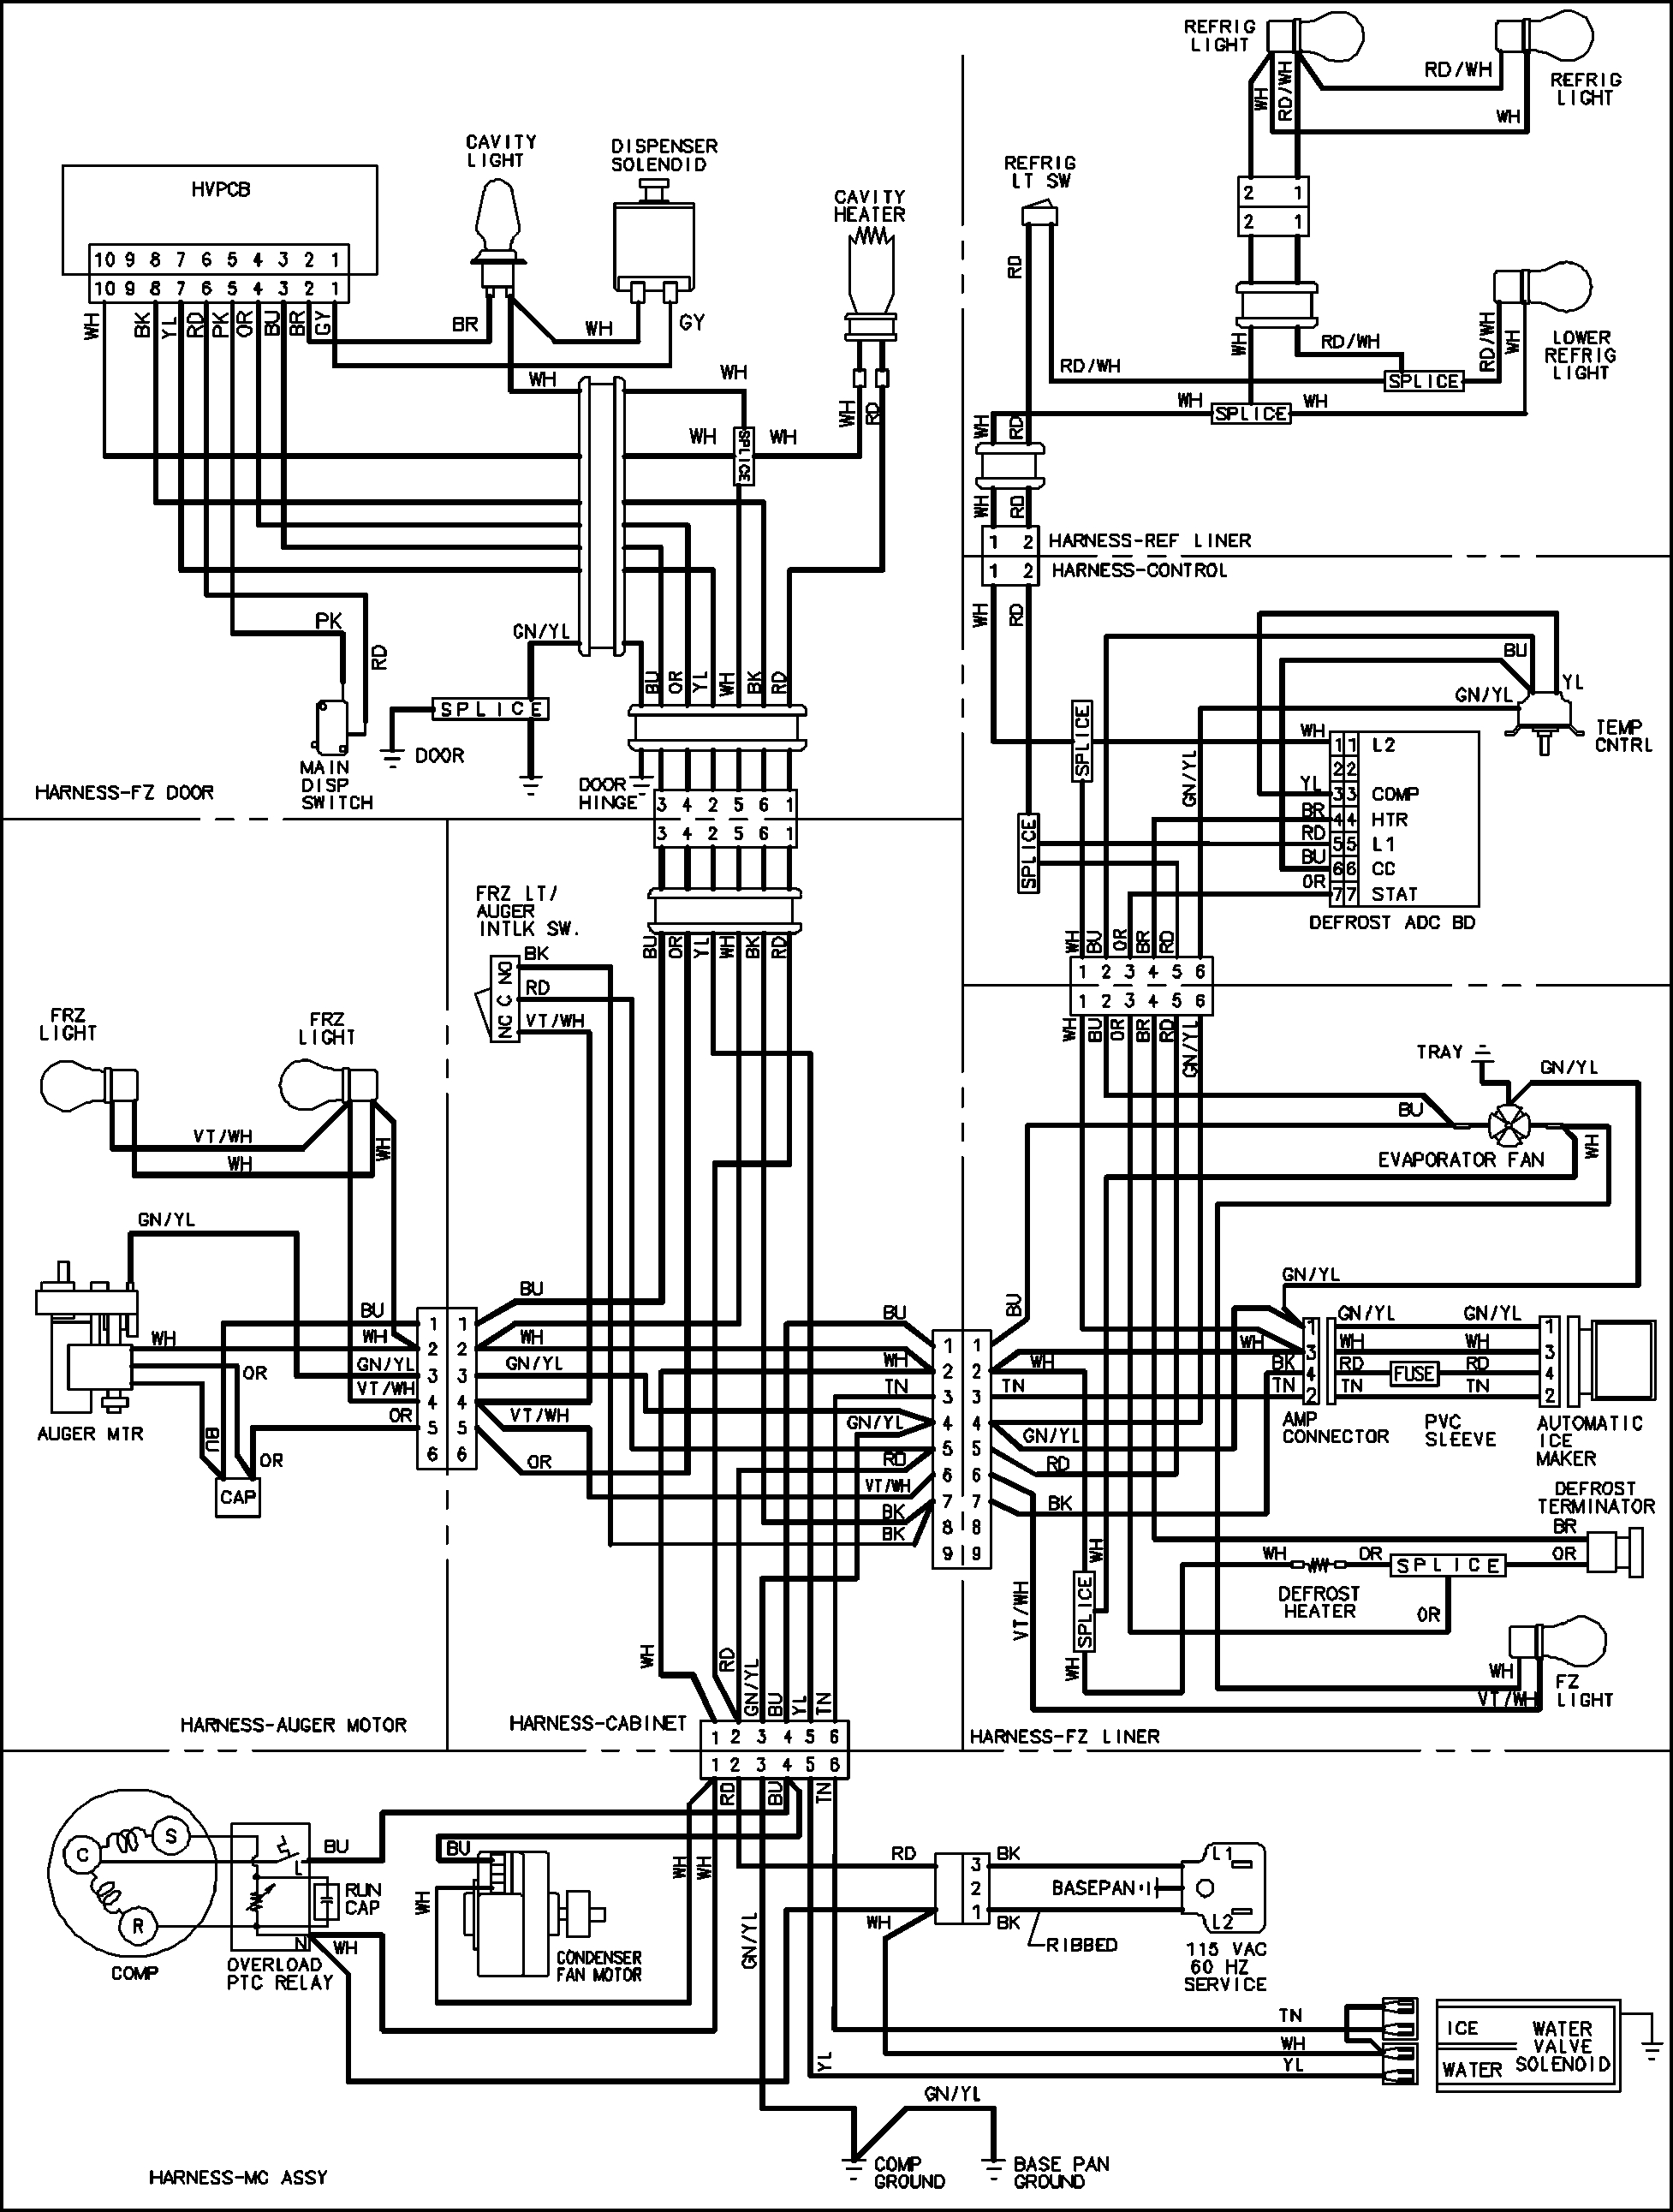 maytag refrigerator wiring diagram Download-Maytag Refrigerator Wiring Diagram Best Maytag Maytag Refrigeration Parts Model Msd2651hew 2-n